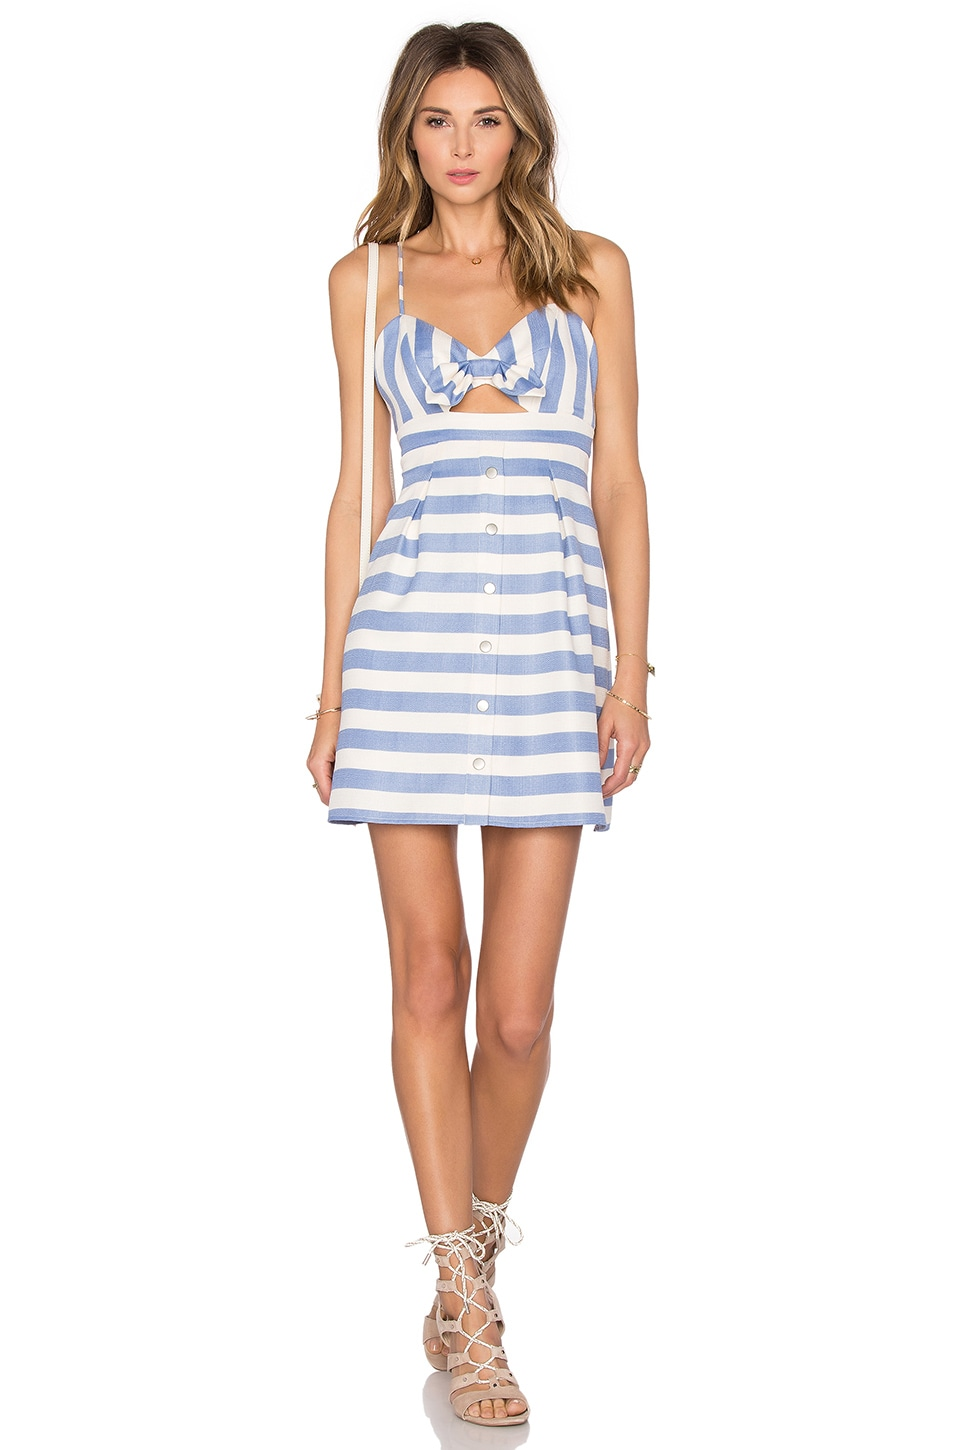 x REVOLVE Ocean Waves Mini Dress by Lovers + Friends